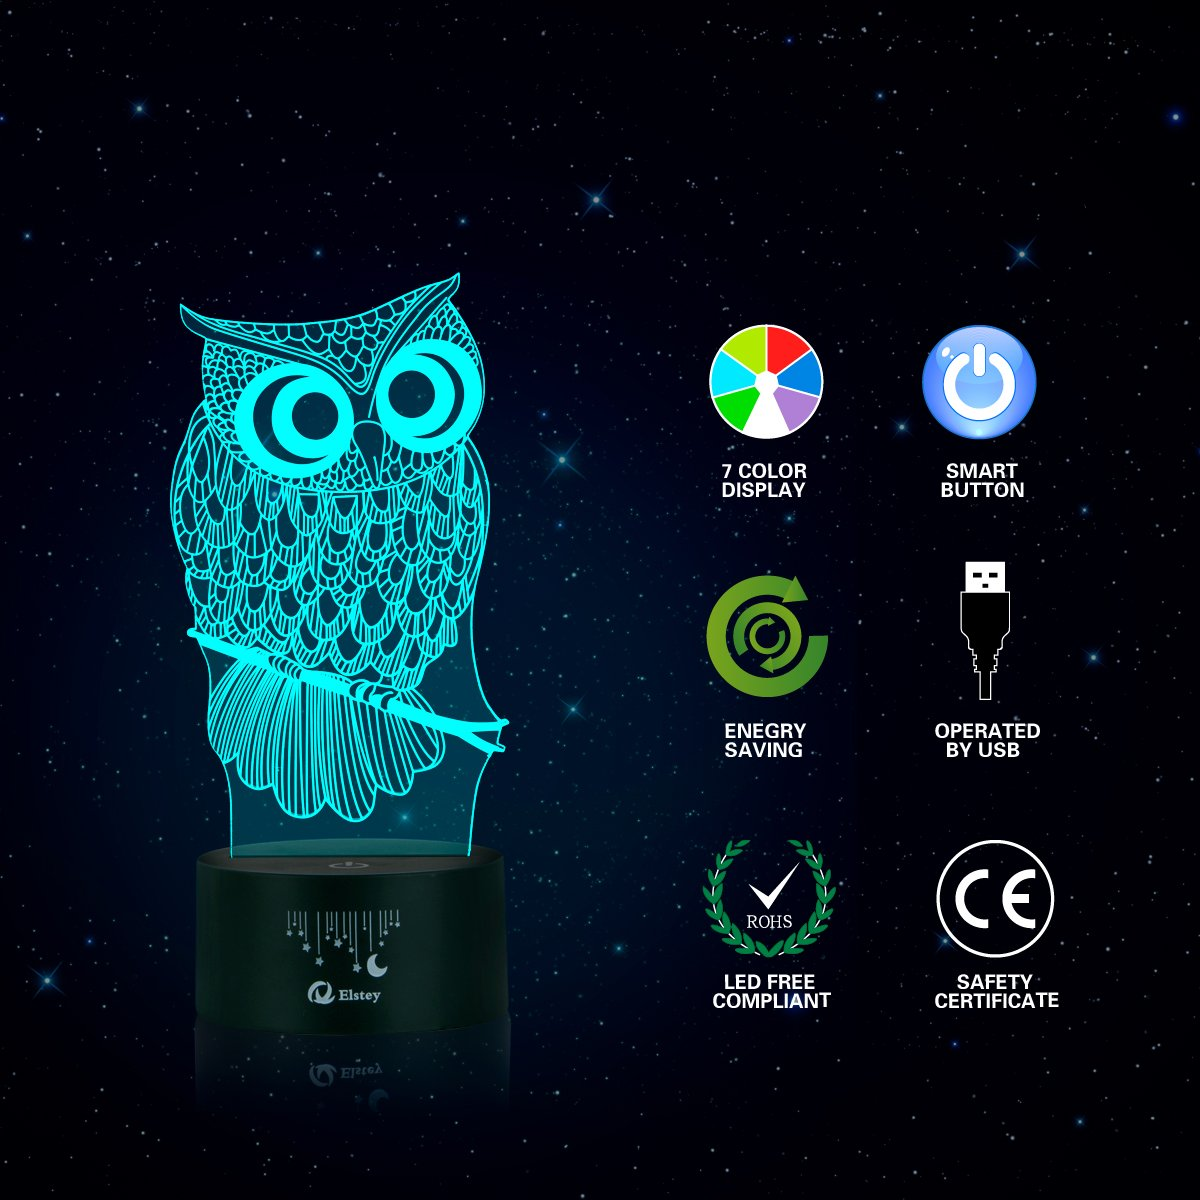 Owl 3D Illusion Lamp, Elstey 7 Color Changing Touch Table Desk LED Night Light Great Kids Gifts Home Decoration by Elstey (Image #5)